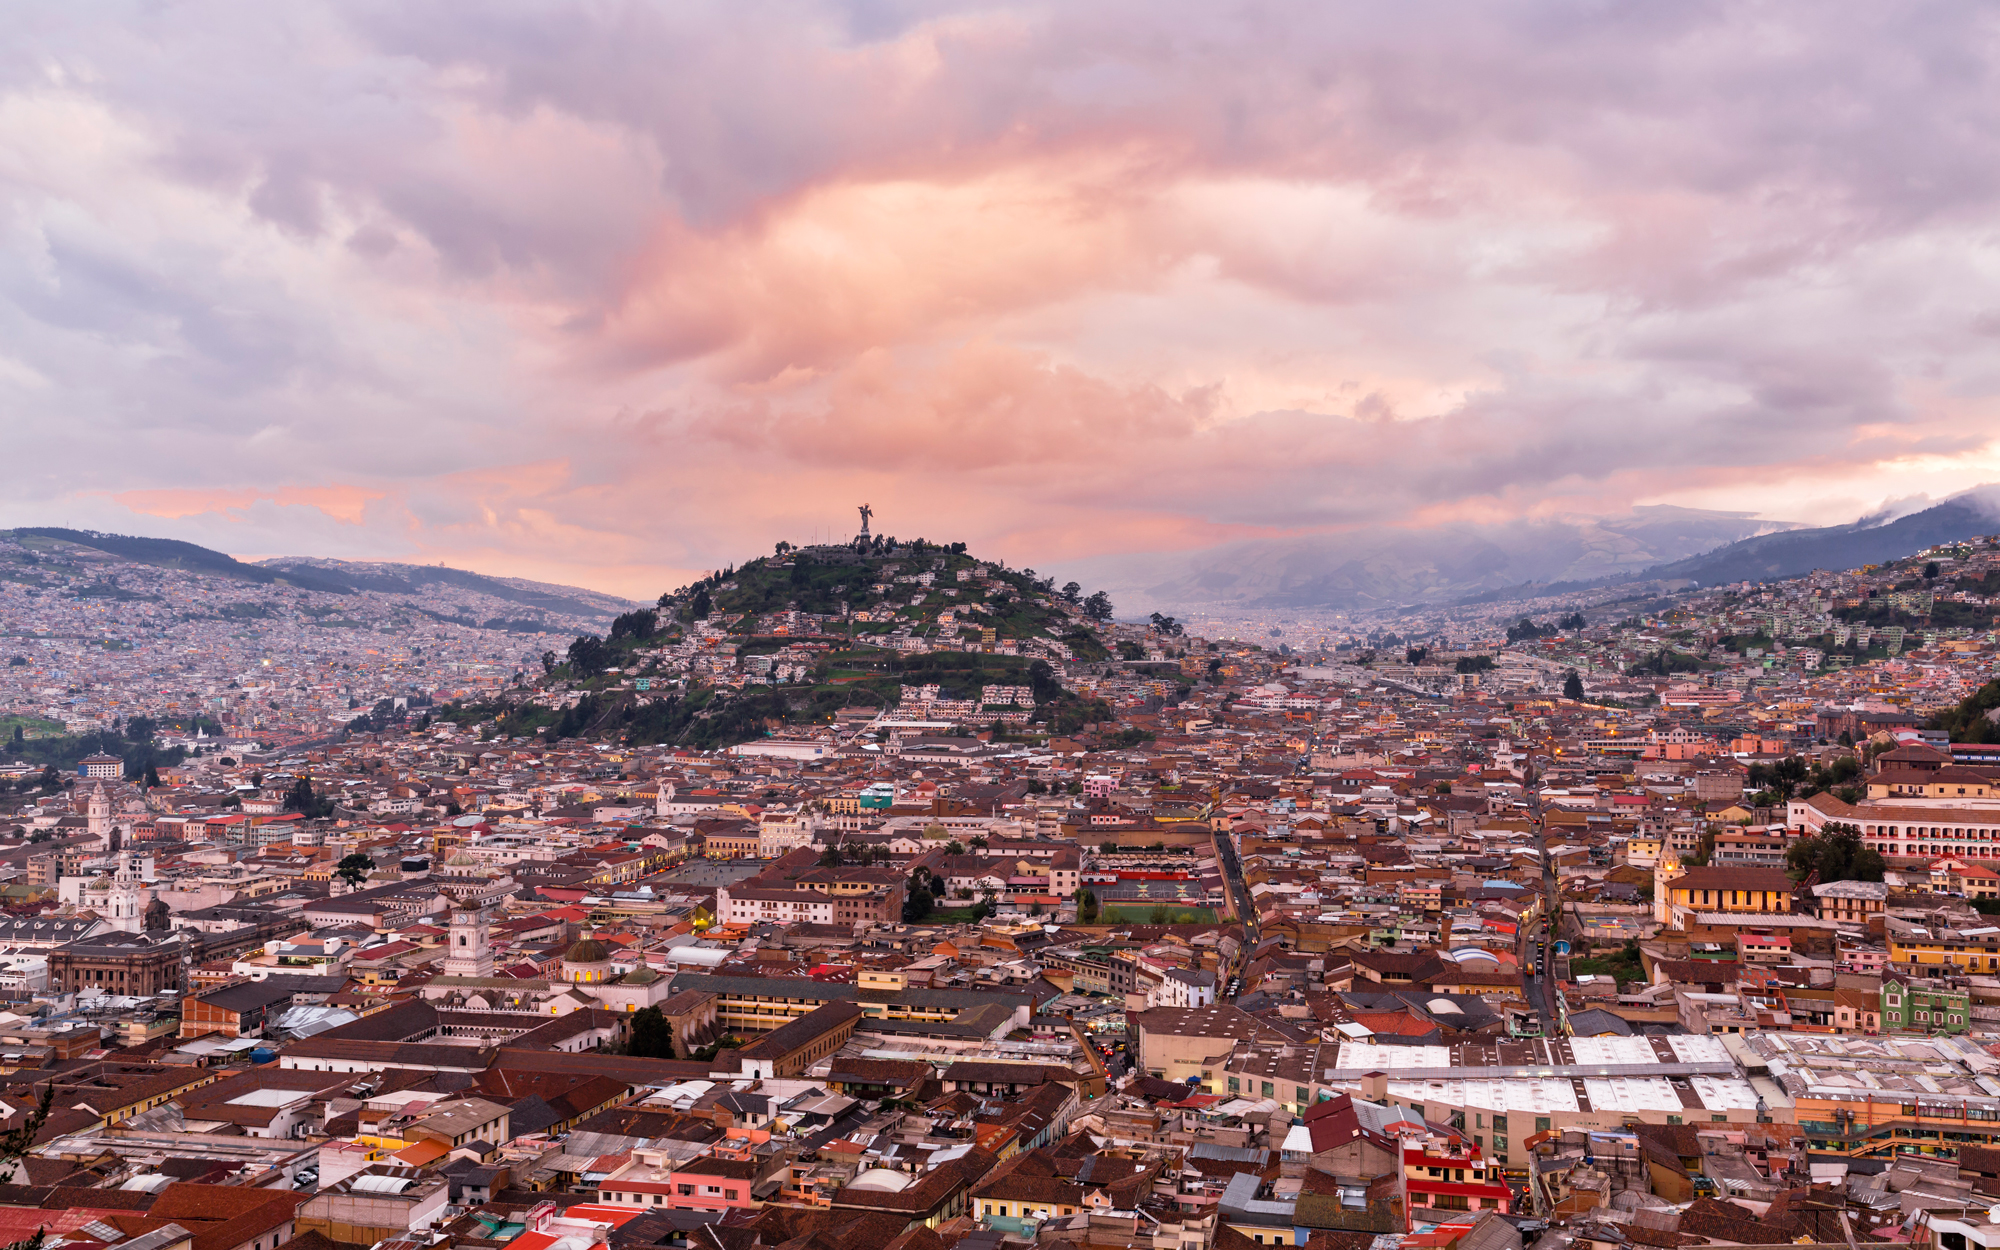 View of El Panecillo, Quito, Ecuador